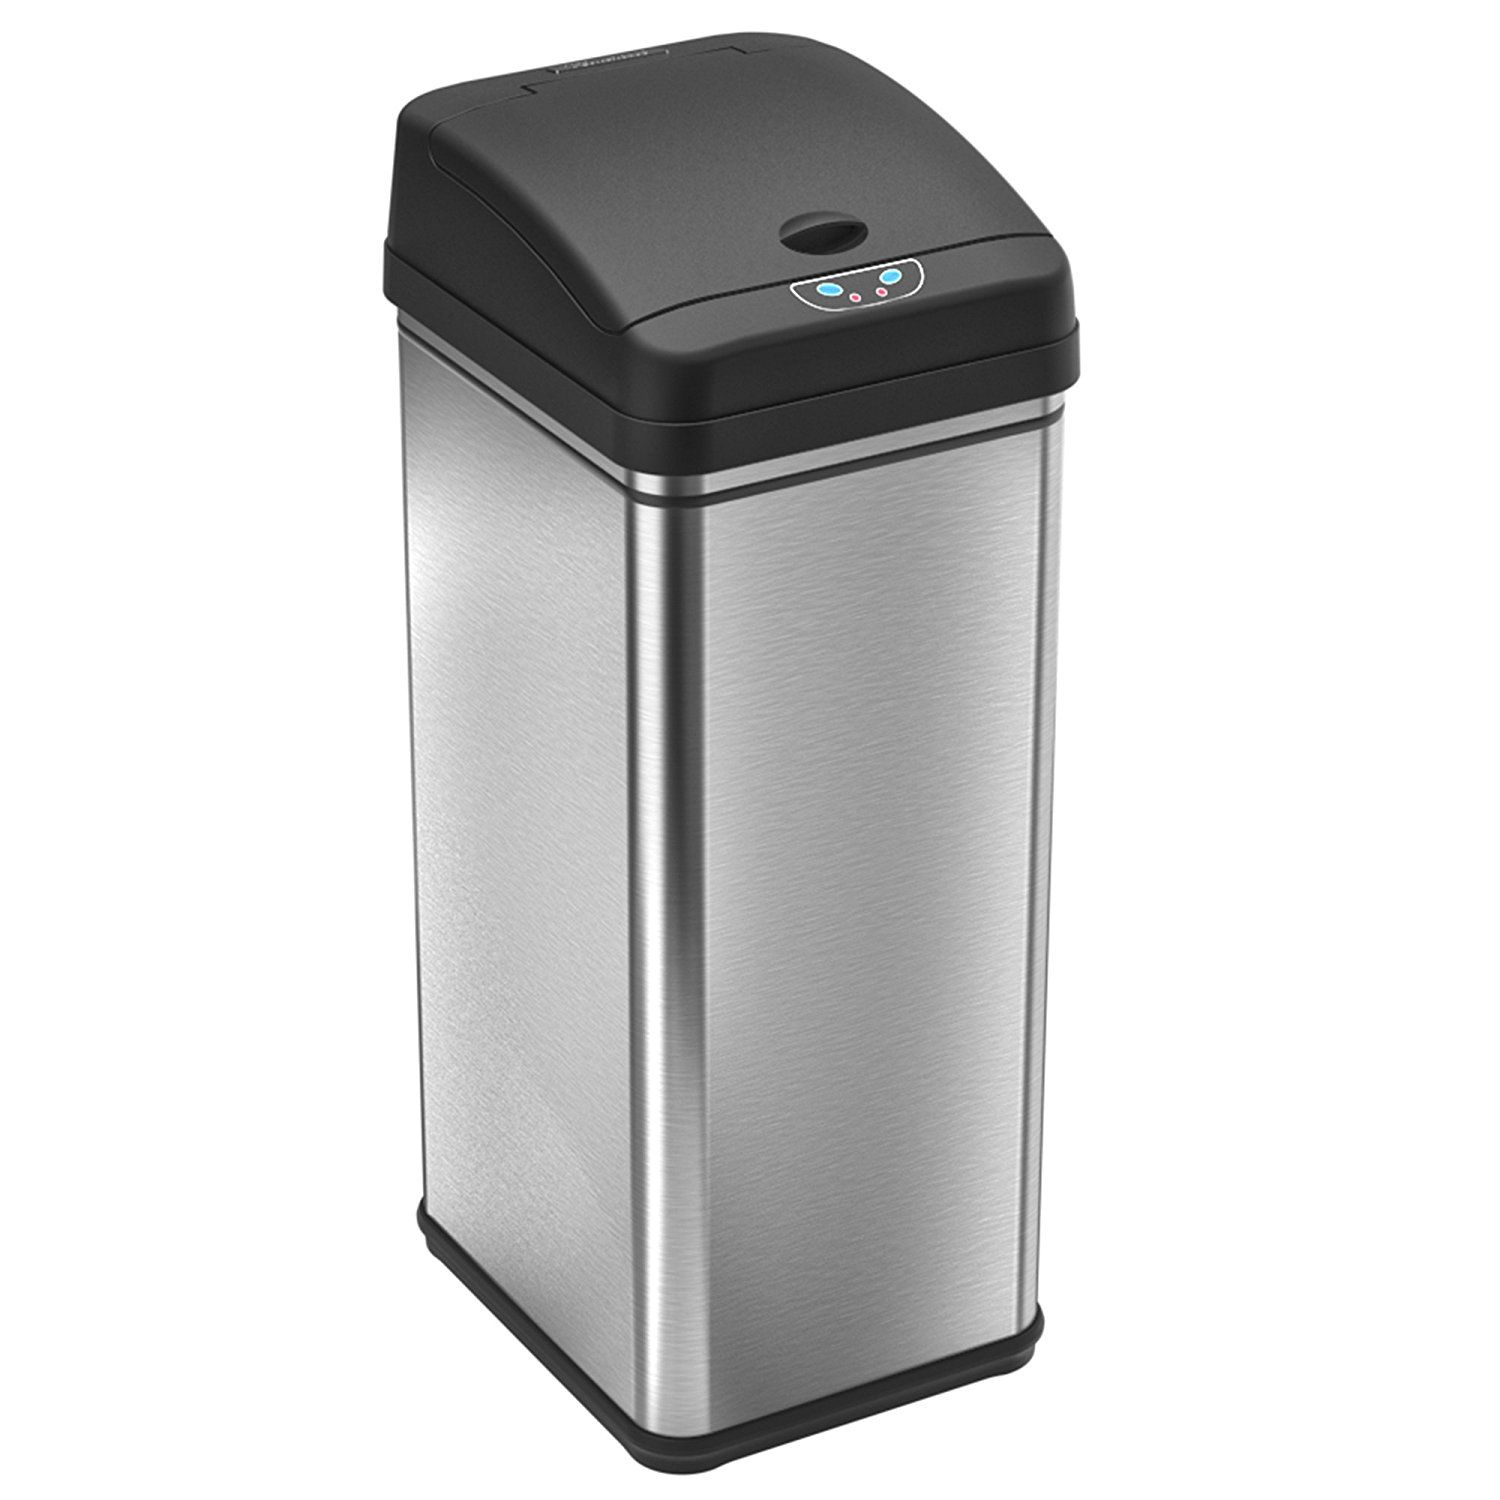 ITouchless 13 Gallon Touchless Sensor Kitchen Trash Can, Stainless Steel,  Odor Filter System, 49 Liter   Walmart.com